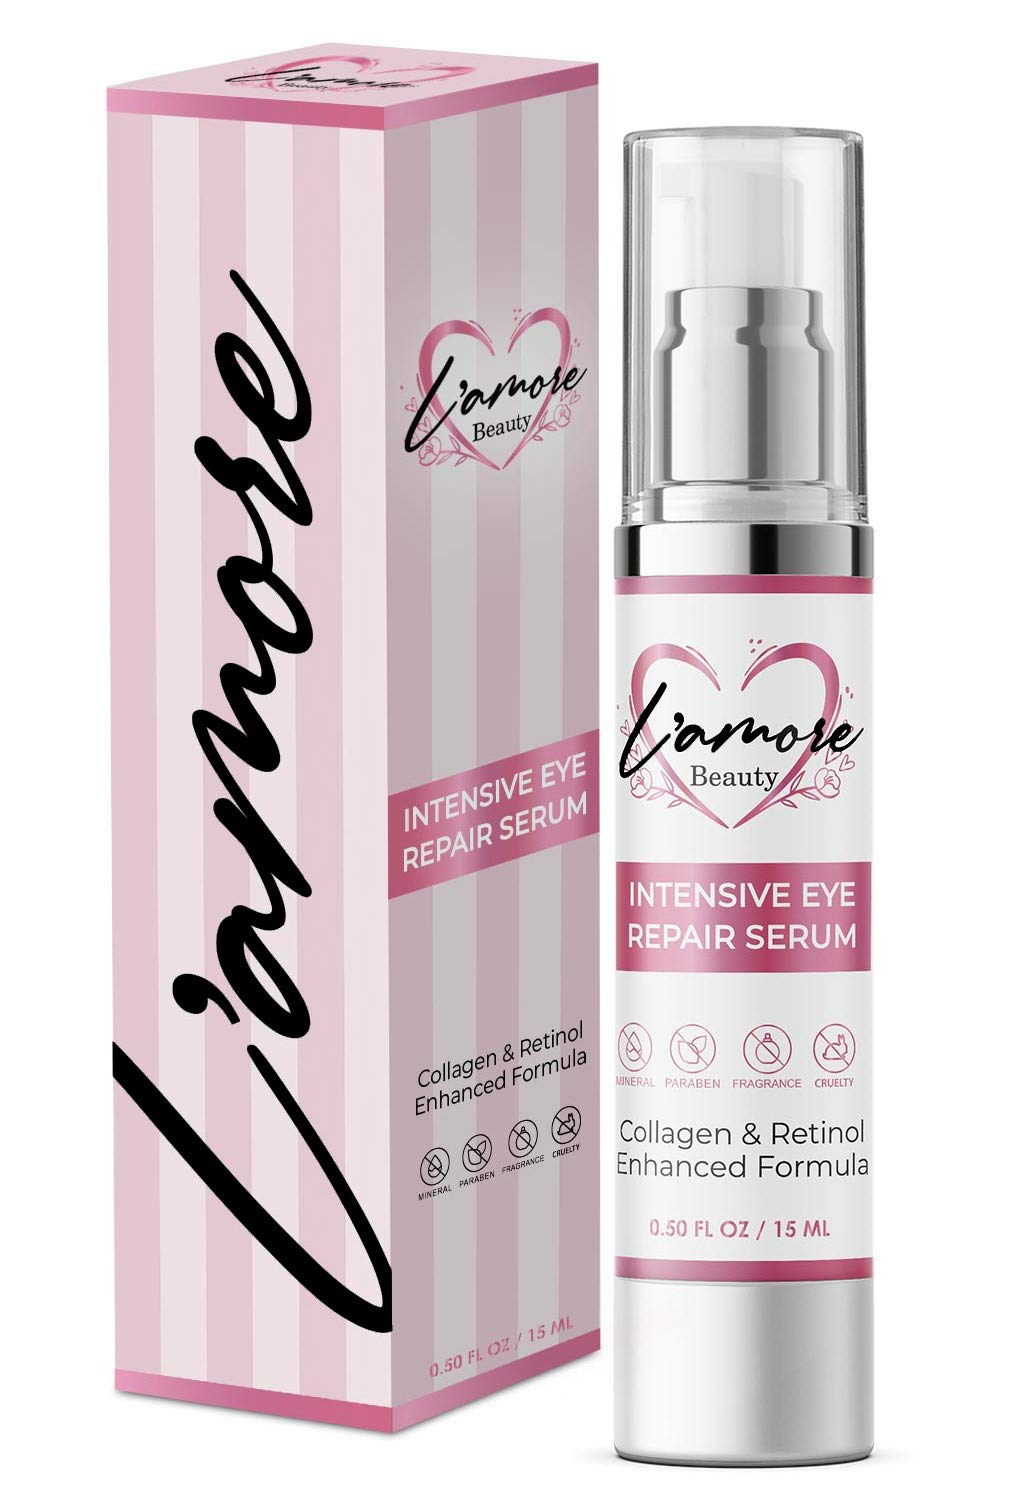 L'amore Beauty Intensive Eye Repair Serum (15 mL) Anti-Aging Collagen Booster with Retinol | Under-Eye Puffy Bags, Dark Spots, Discoloration, Fine Lines, Wrinkles | Cruelty-Free | Made in USA by L'amore Beauty